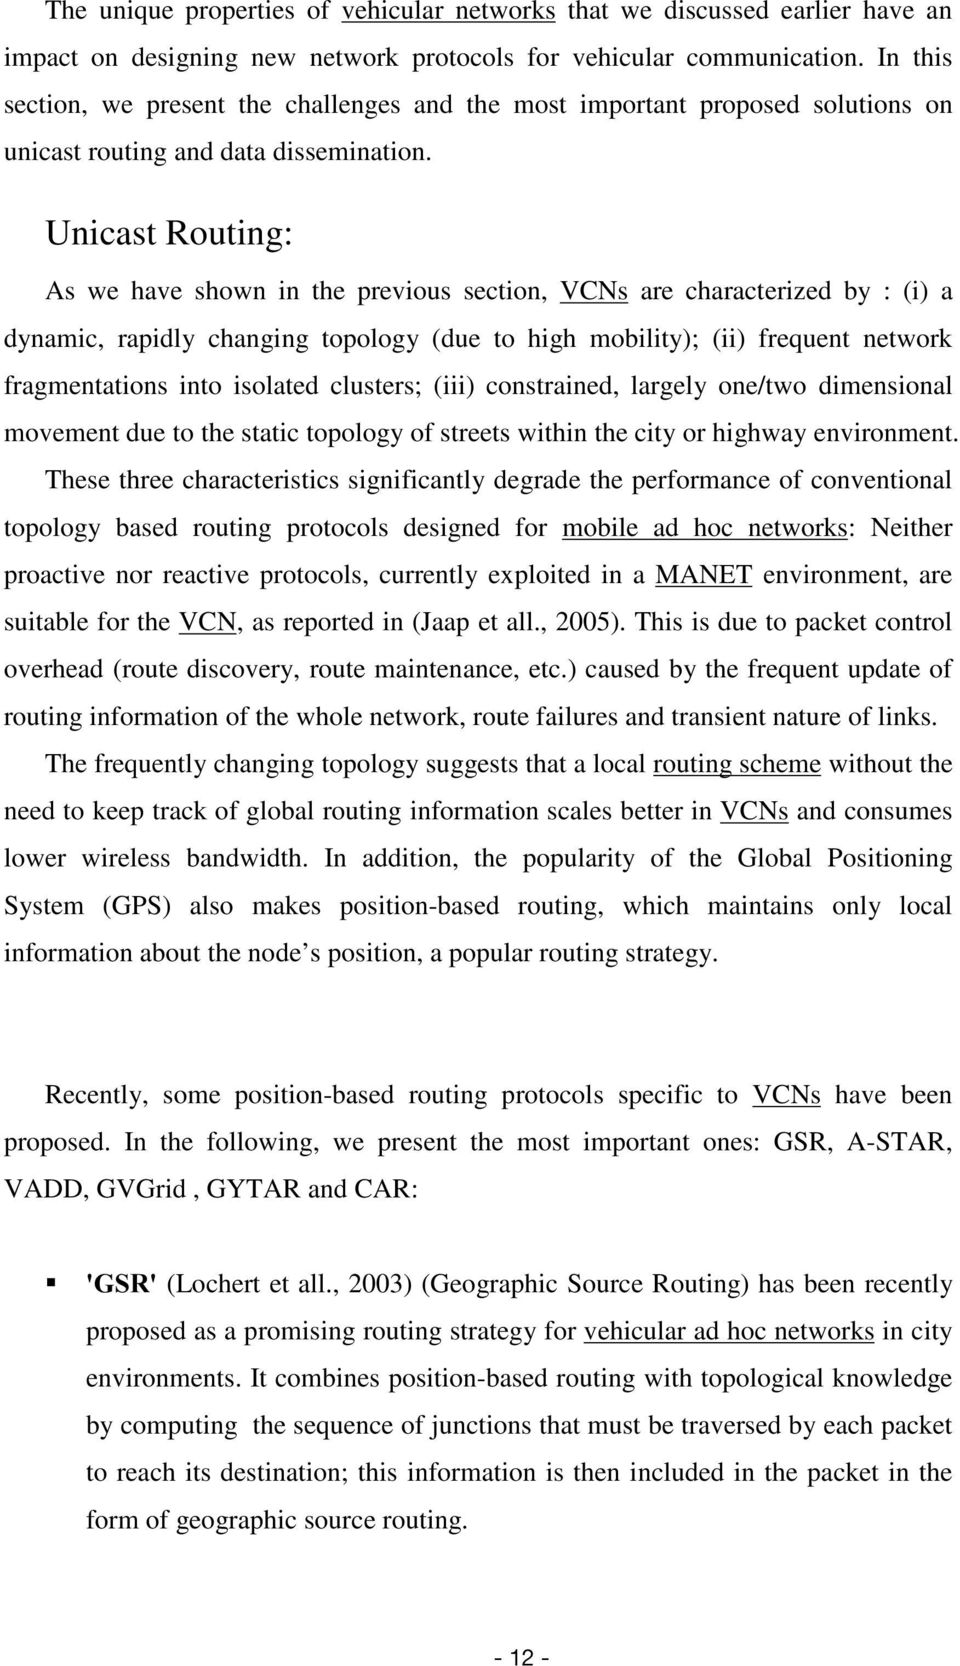 Unicast Routing: As we have shown in the previous section, VCNs are characterized by : (i) a dynamic, rapidly changing topology (due to high mobility); (ii) frequent network fragmentations into